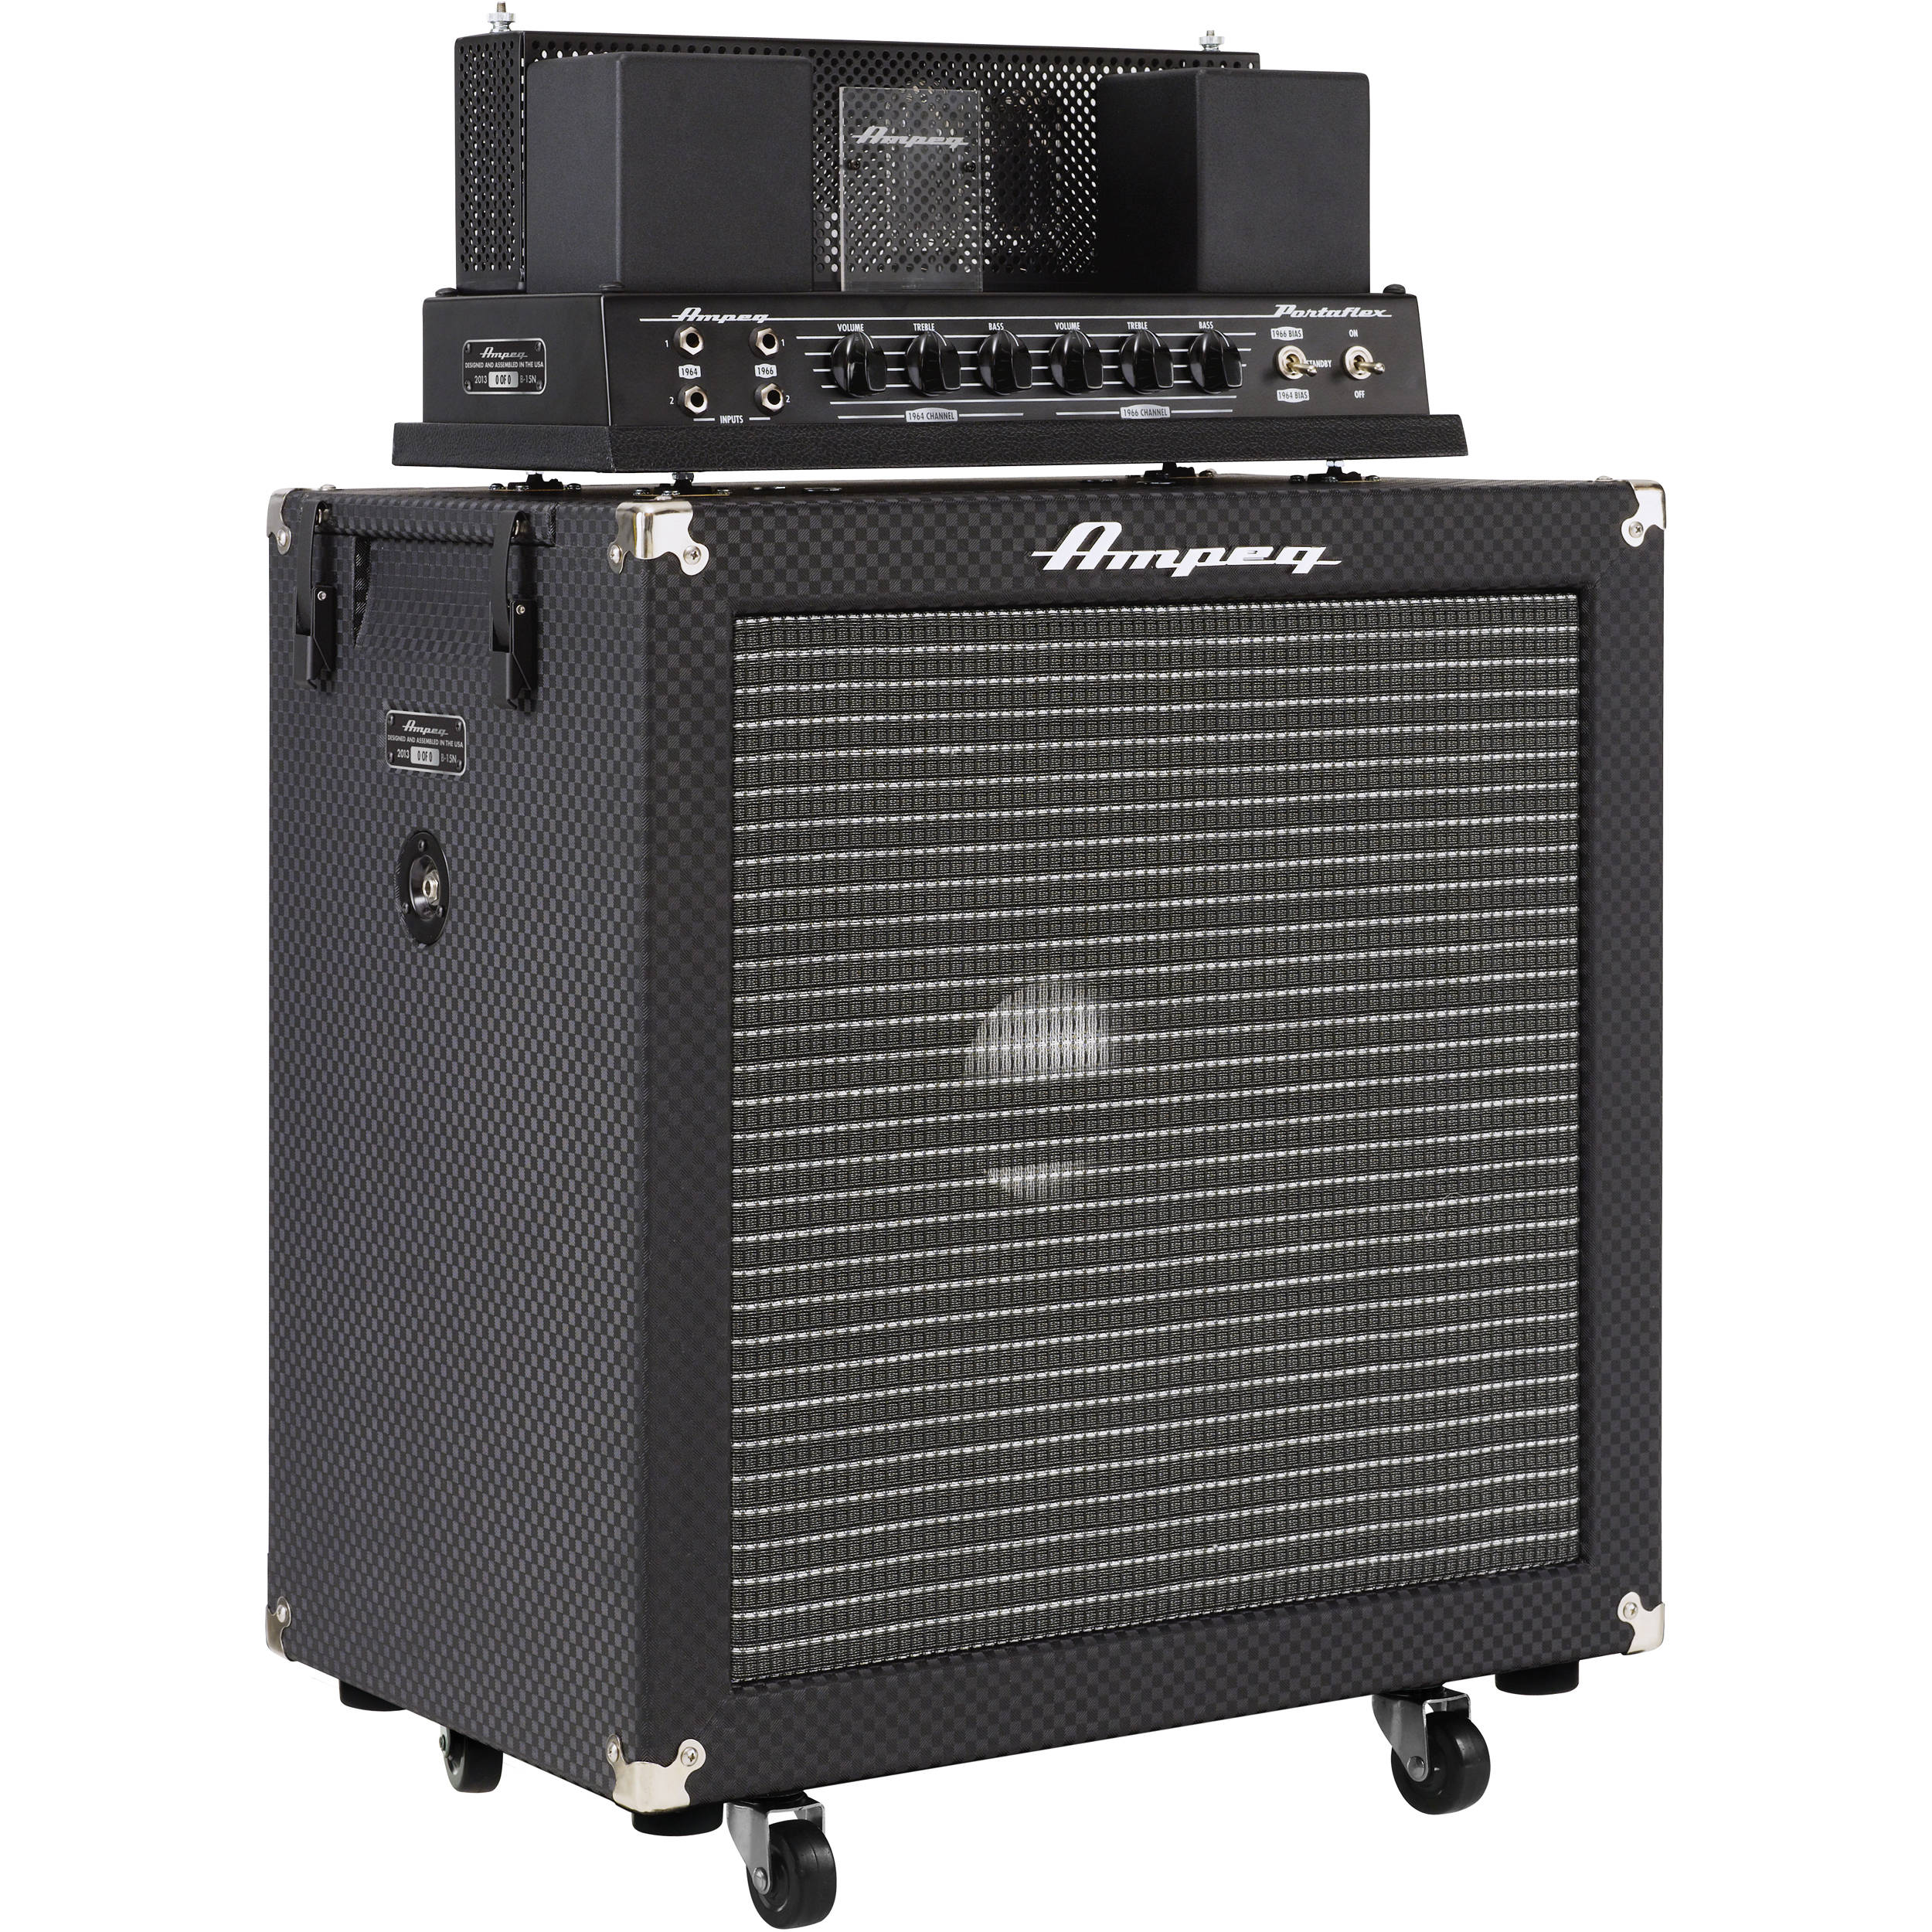 Ampeg Heritage B 15 All Tube Bass Amplifier Hb 15n Bh Photo Preamplifier Rectifier Circuit Board Srppin Integrated Circuits